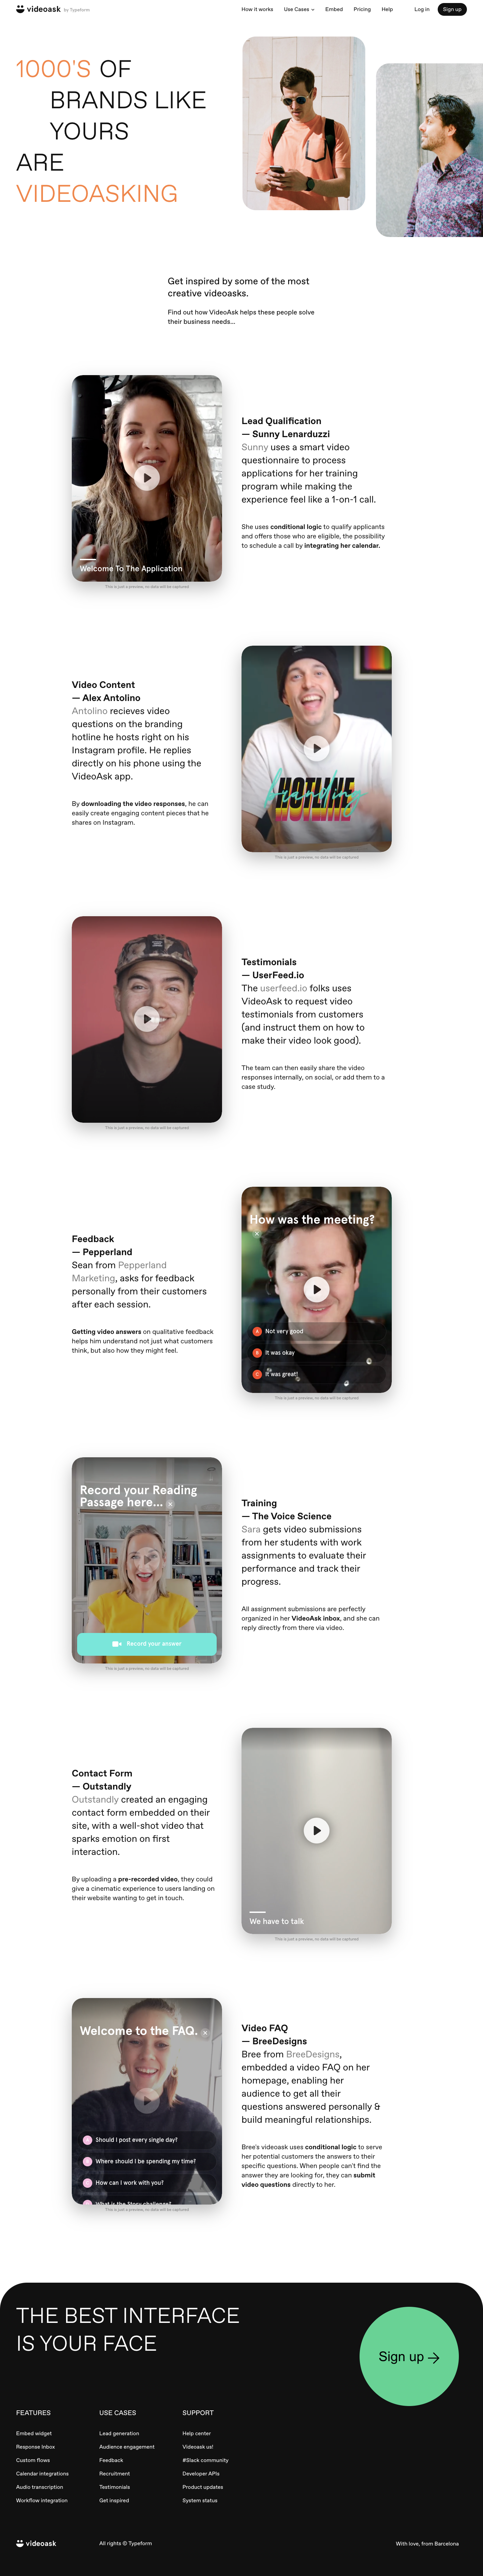 VideoAsk Use Cases Page